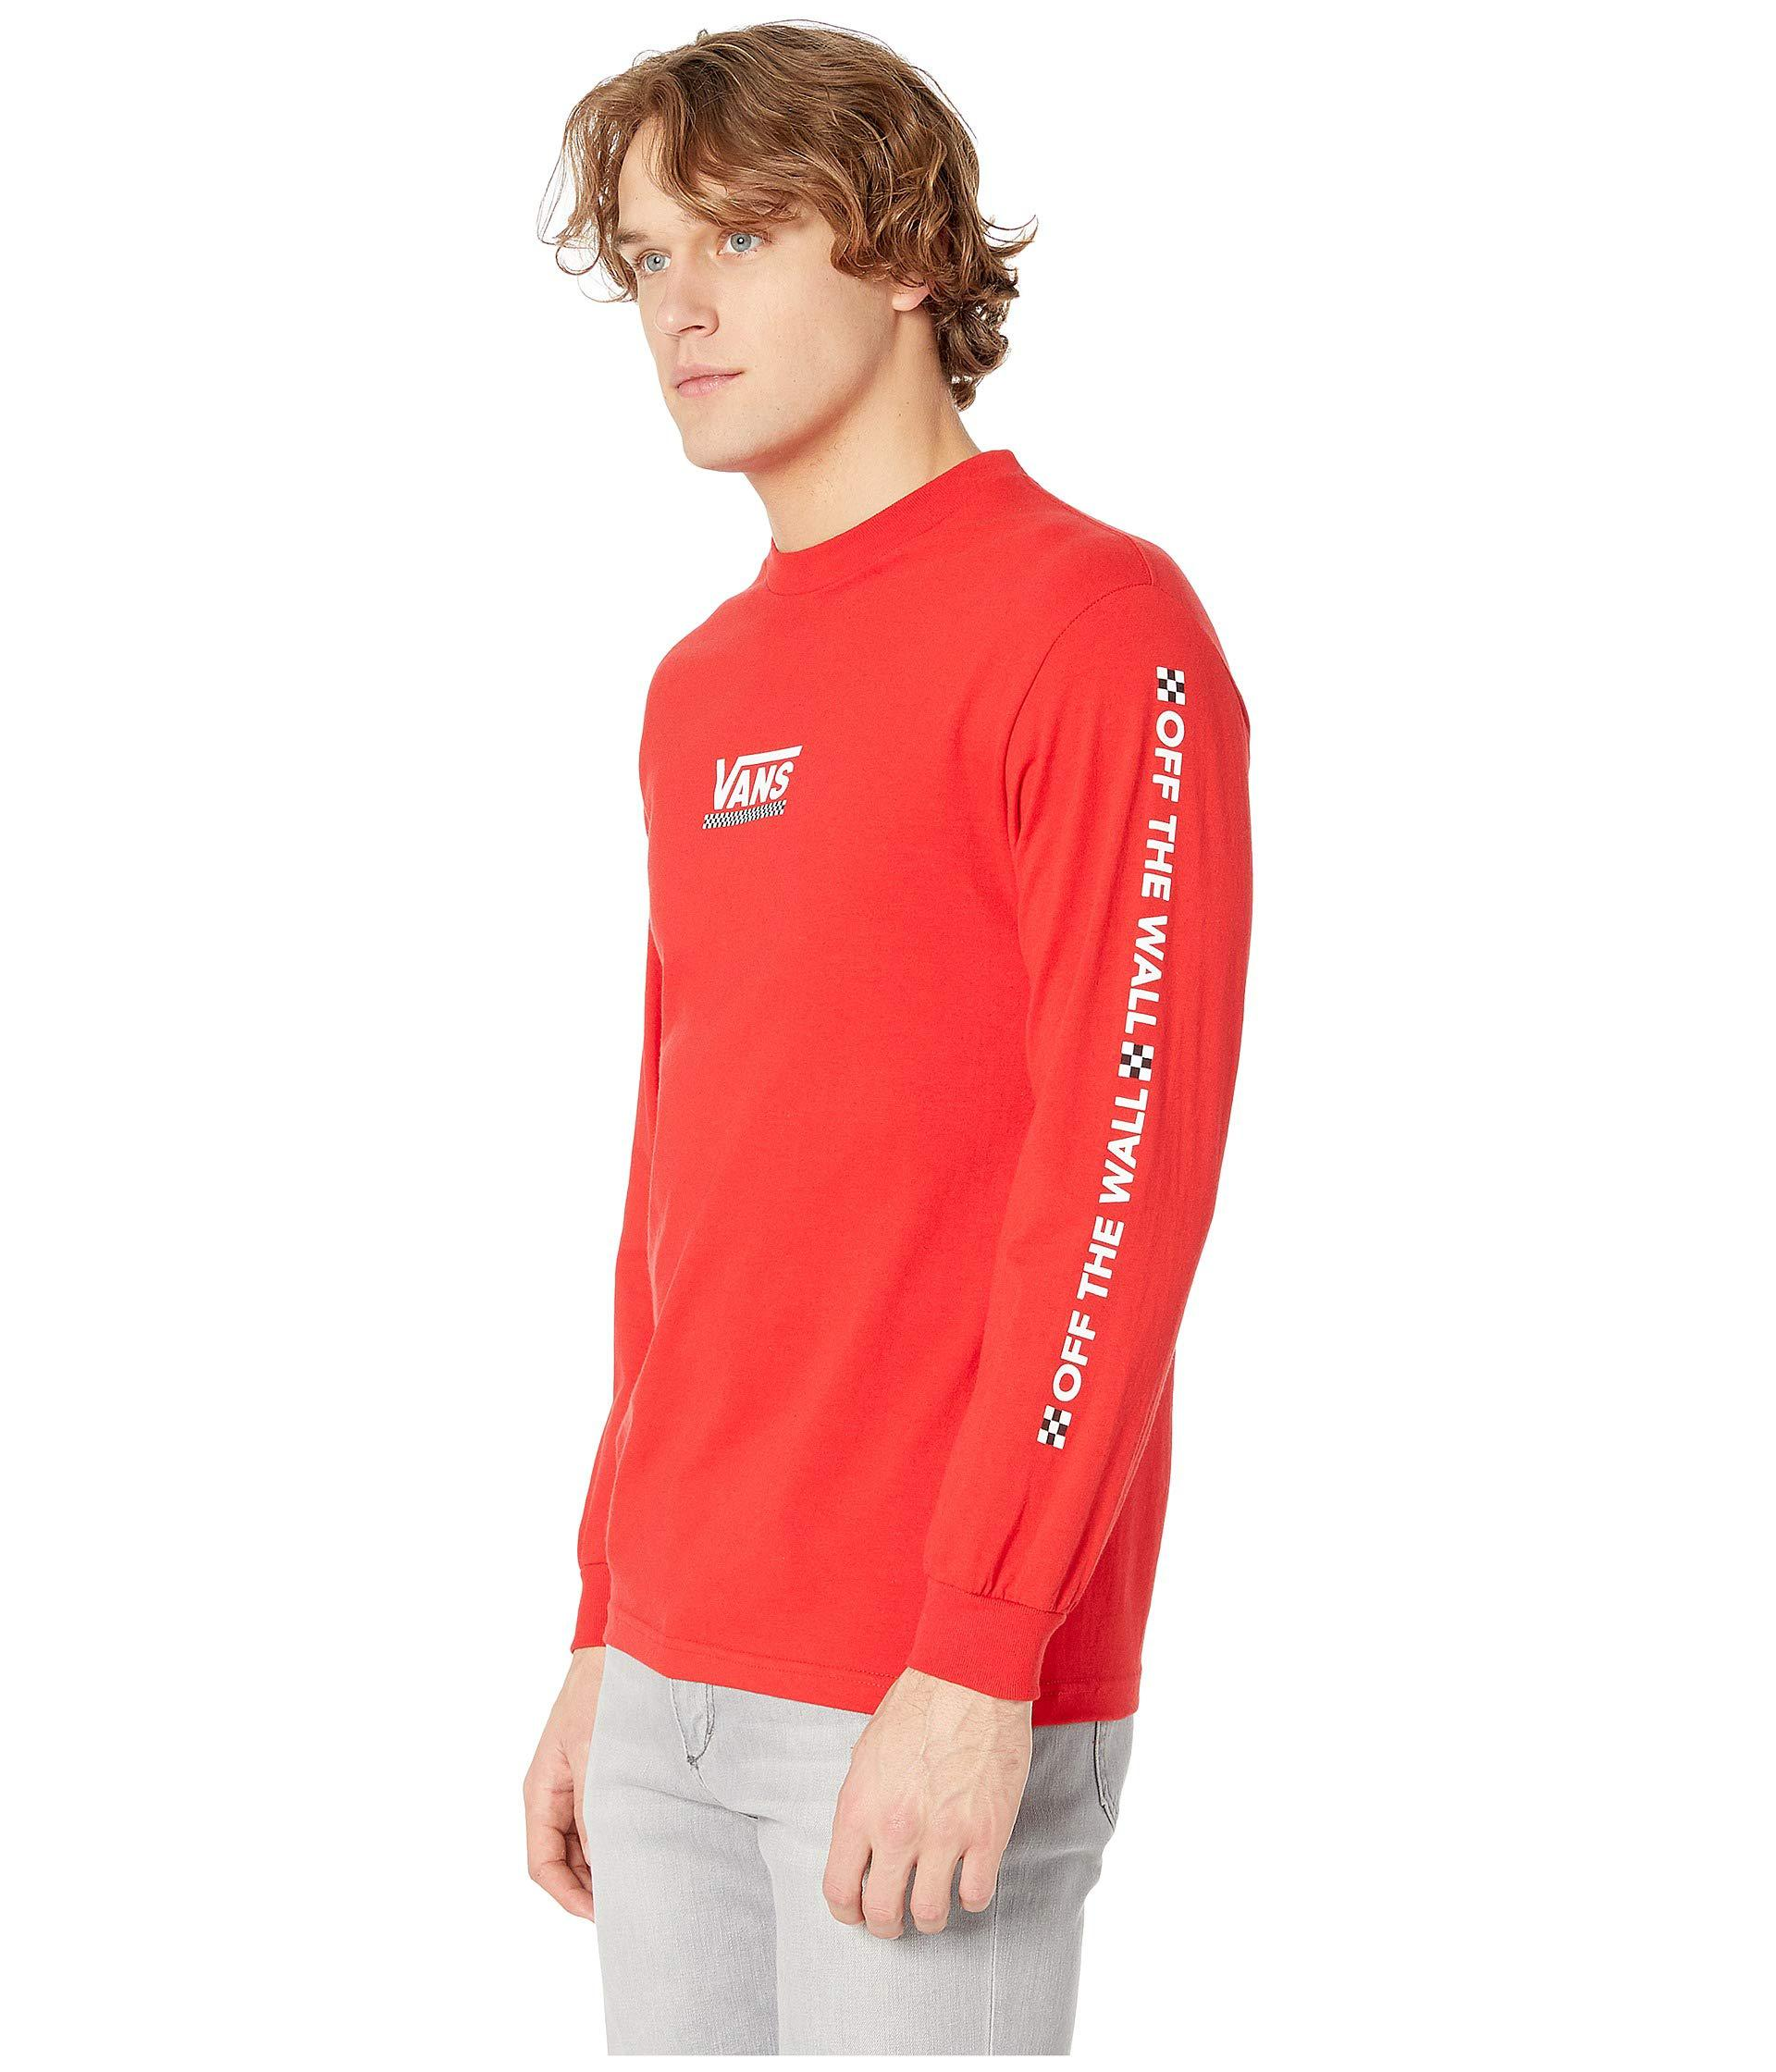 f757f6f07049 Lyst - Vans Checkmate Iii Long Sleeve T-shirt (racing Red) Men's Clothing  in Red for Men - Save 5%